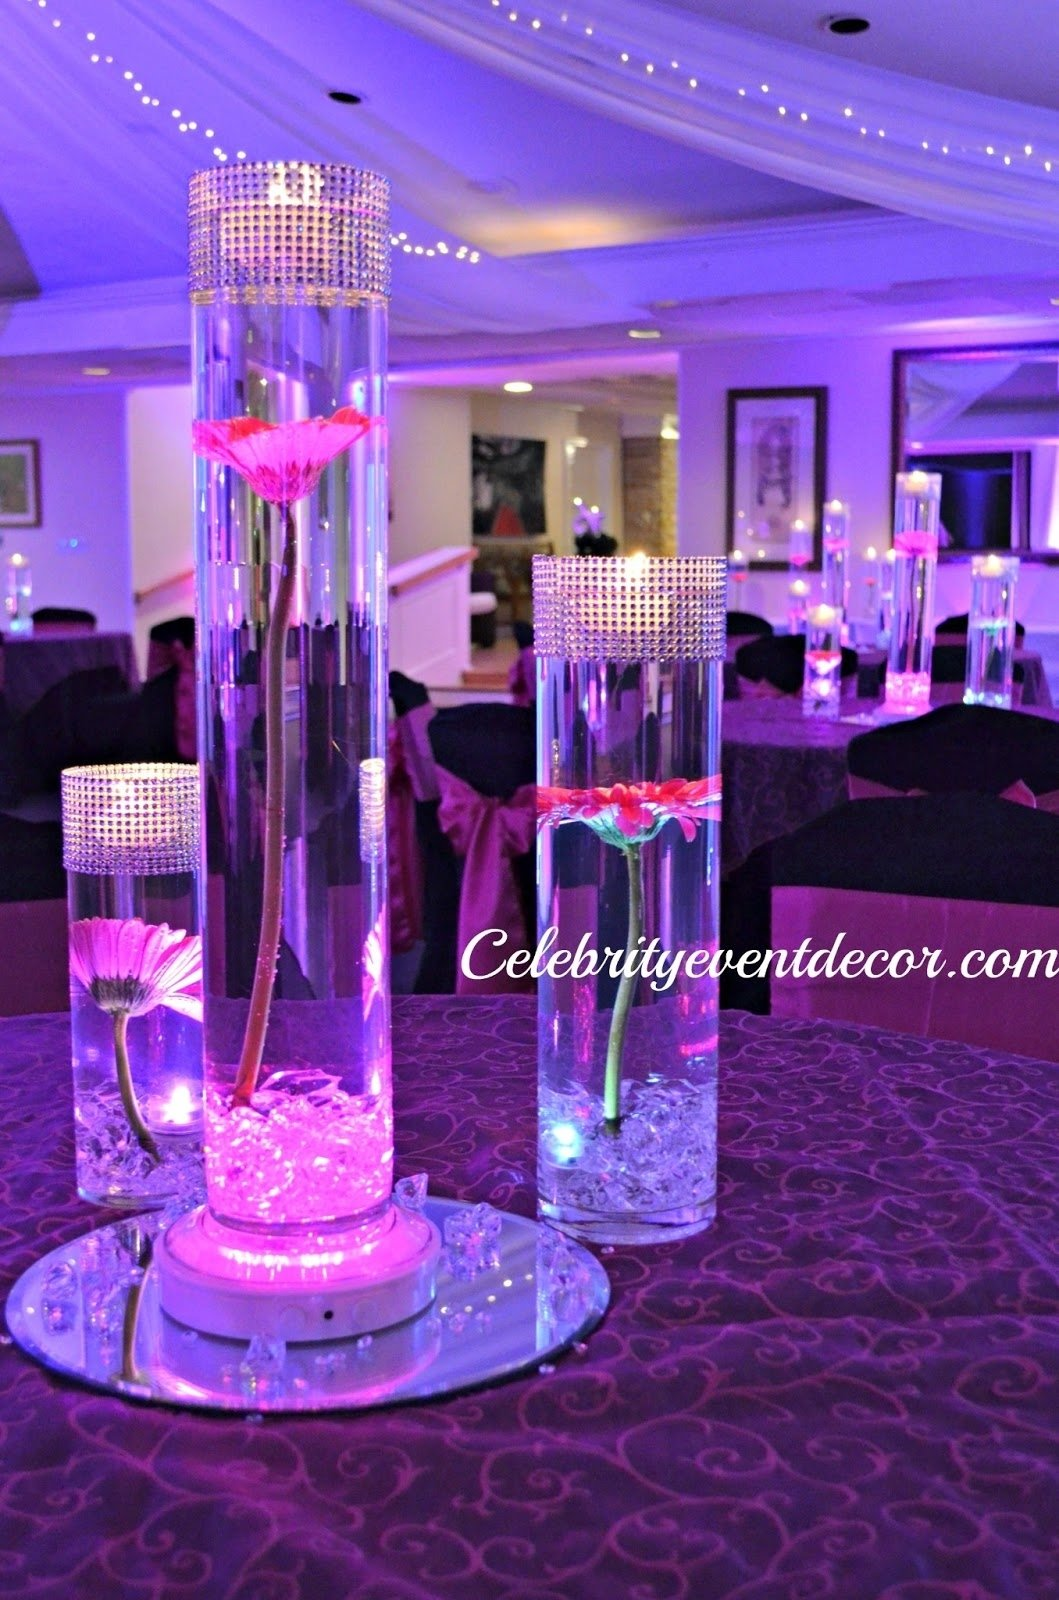 10 Lovely Cool Sweet 16 Party Ideas postedcelebrity event decor amp celebrity events banquet hall 1 2020